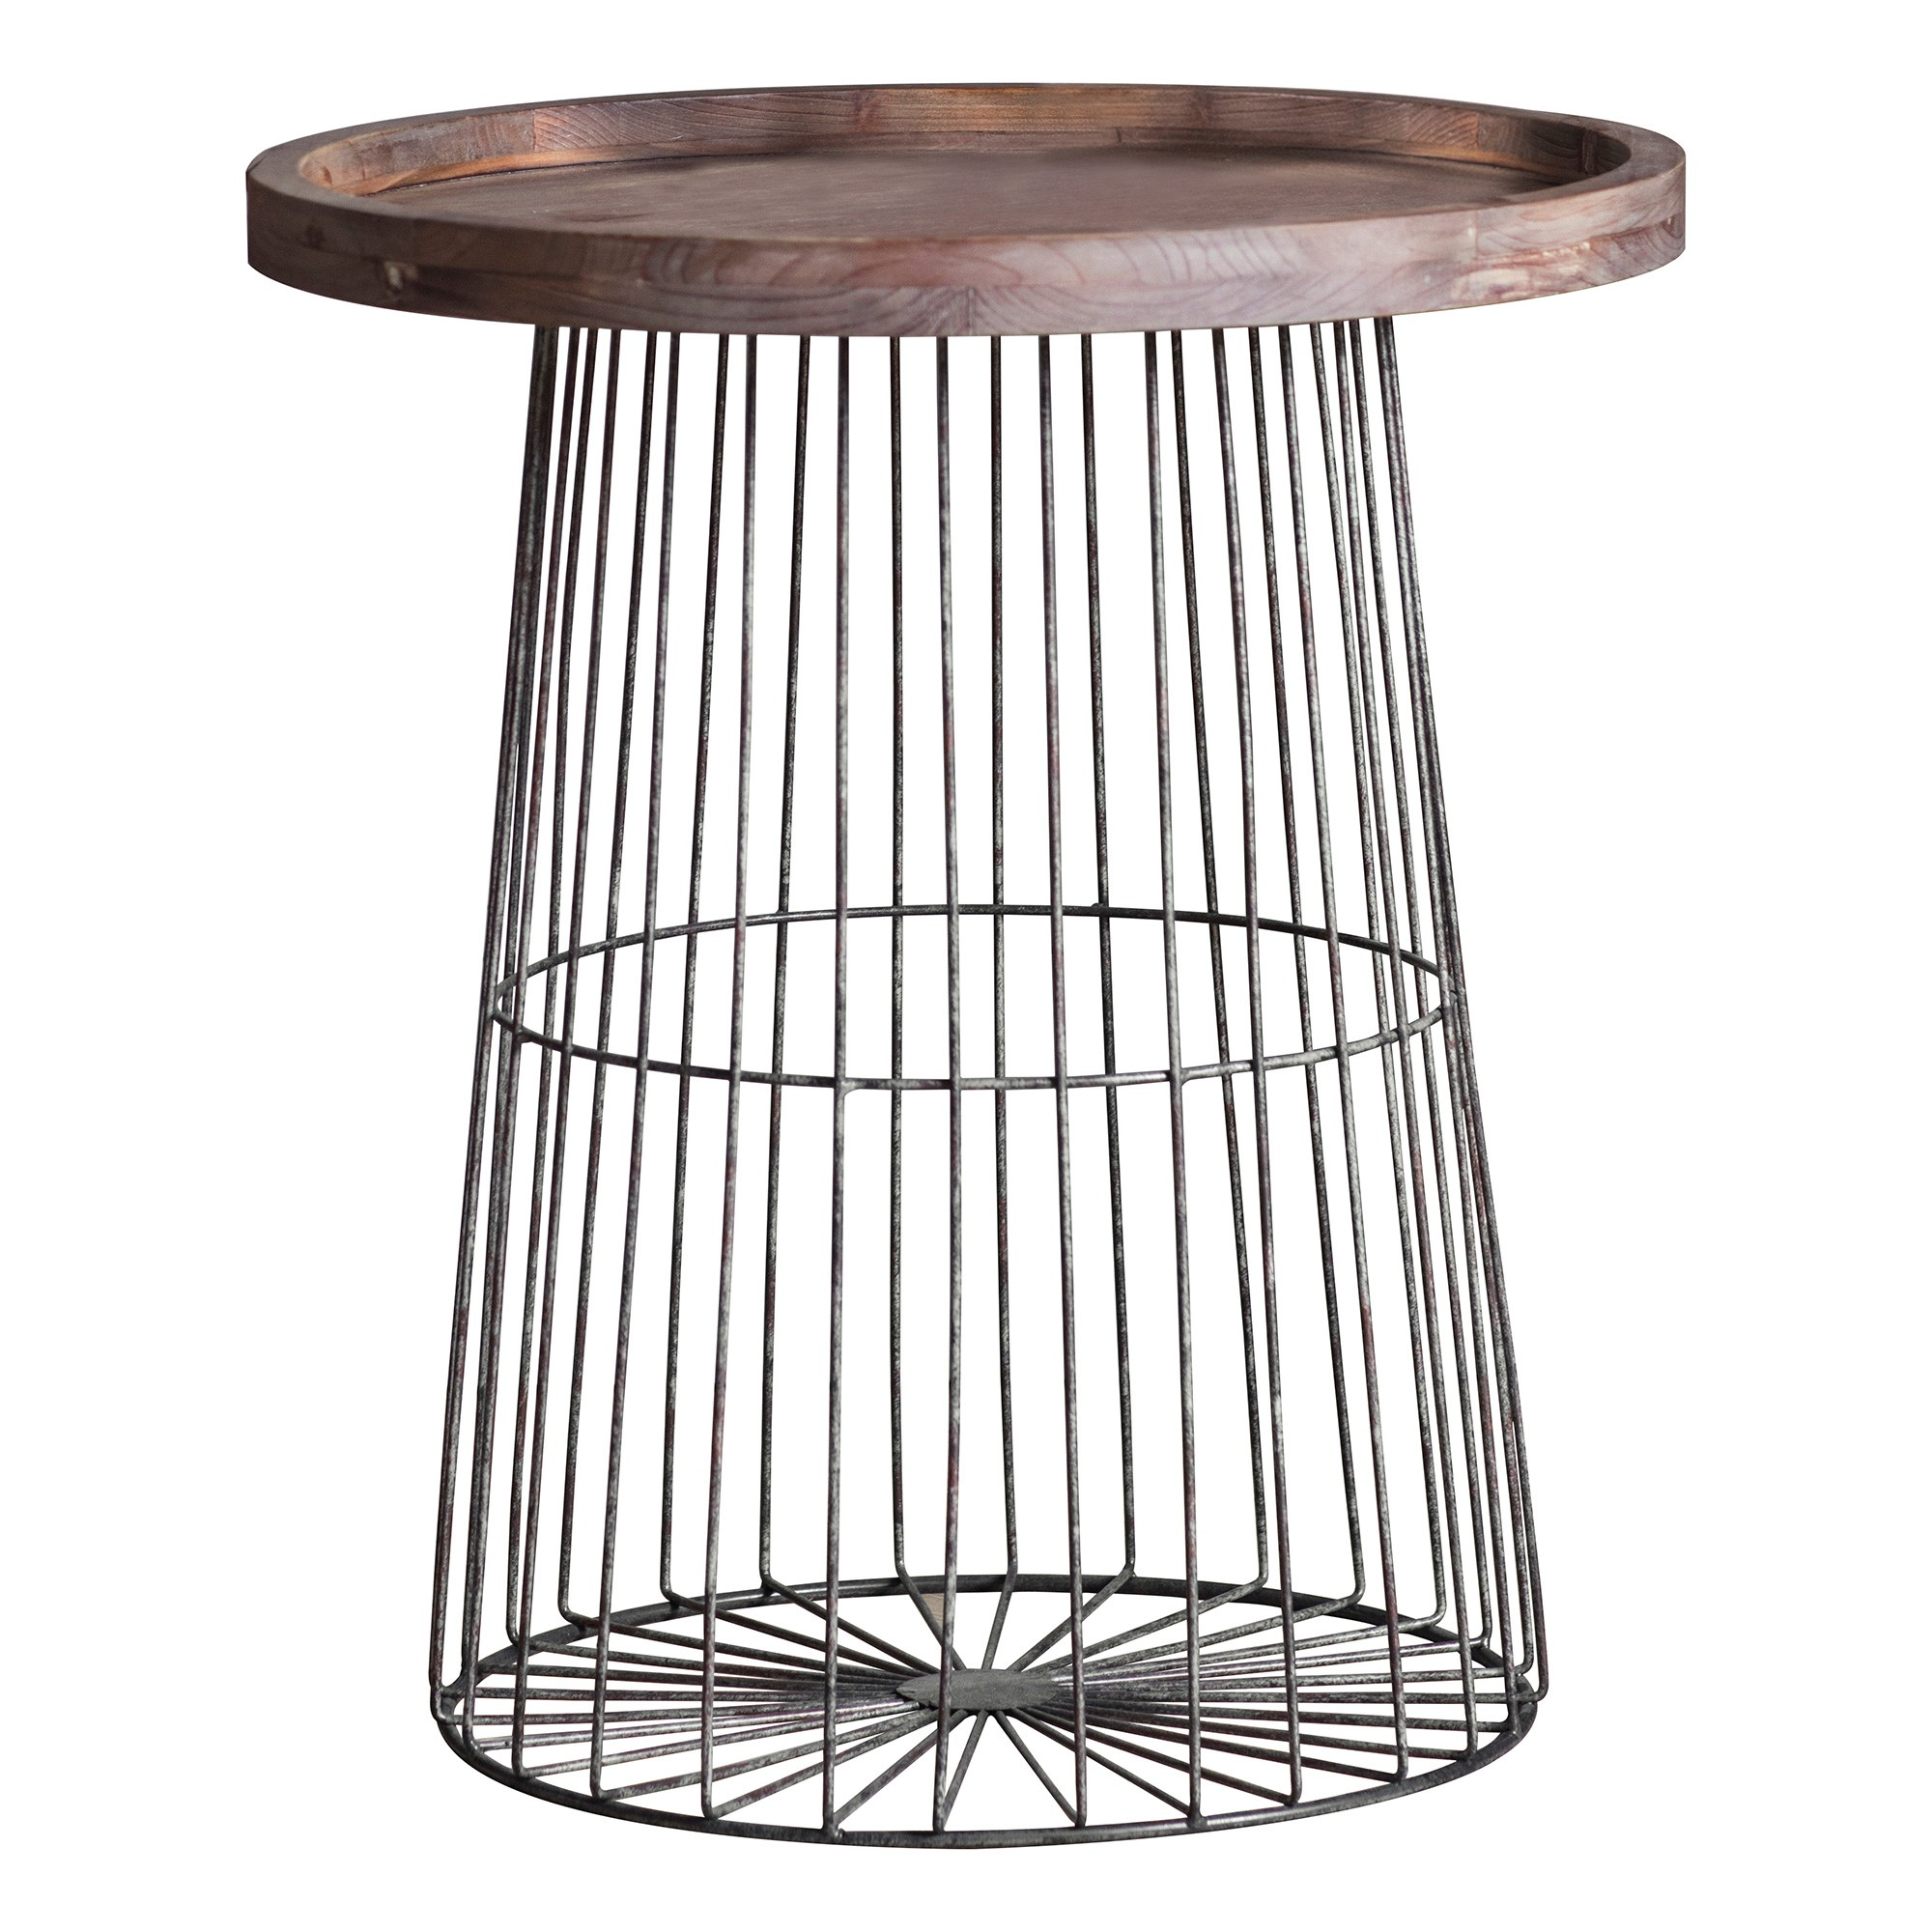 Myrick Fir Timber & Metal Tray Top Round Side Table